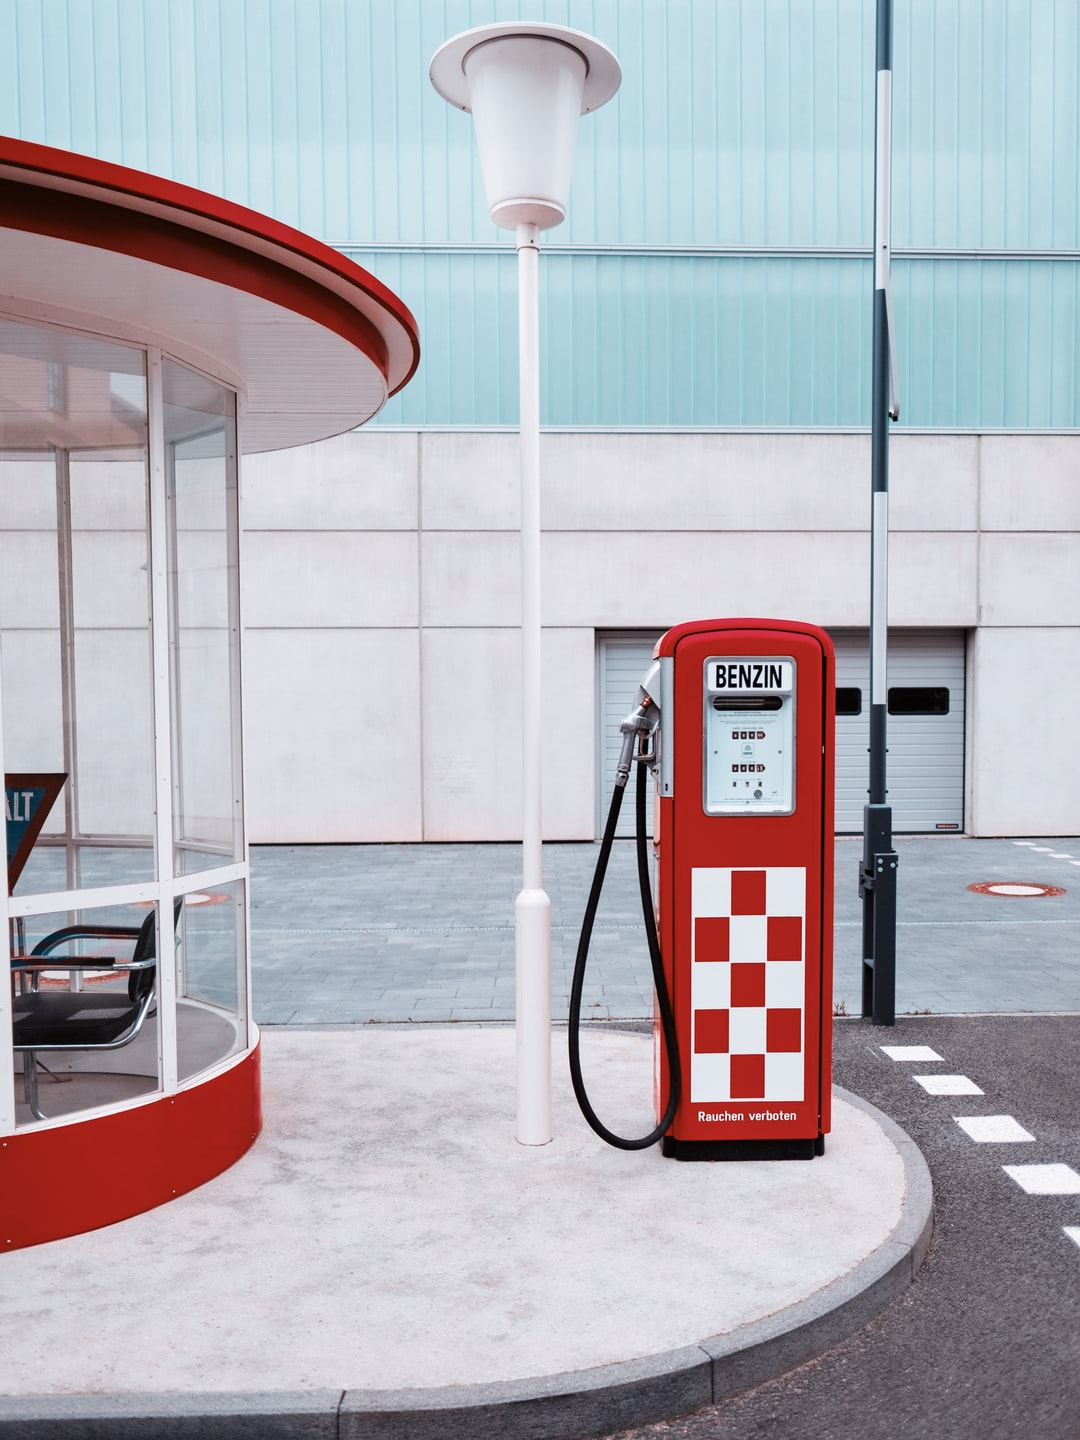 Retro petrol station from the 1960s creating a nostalgic feeling.